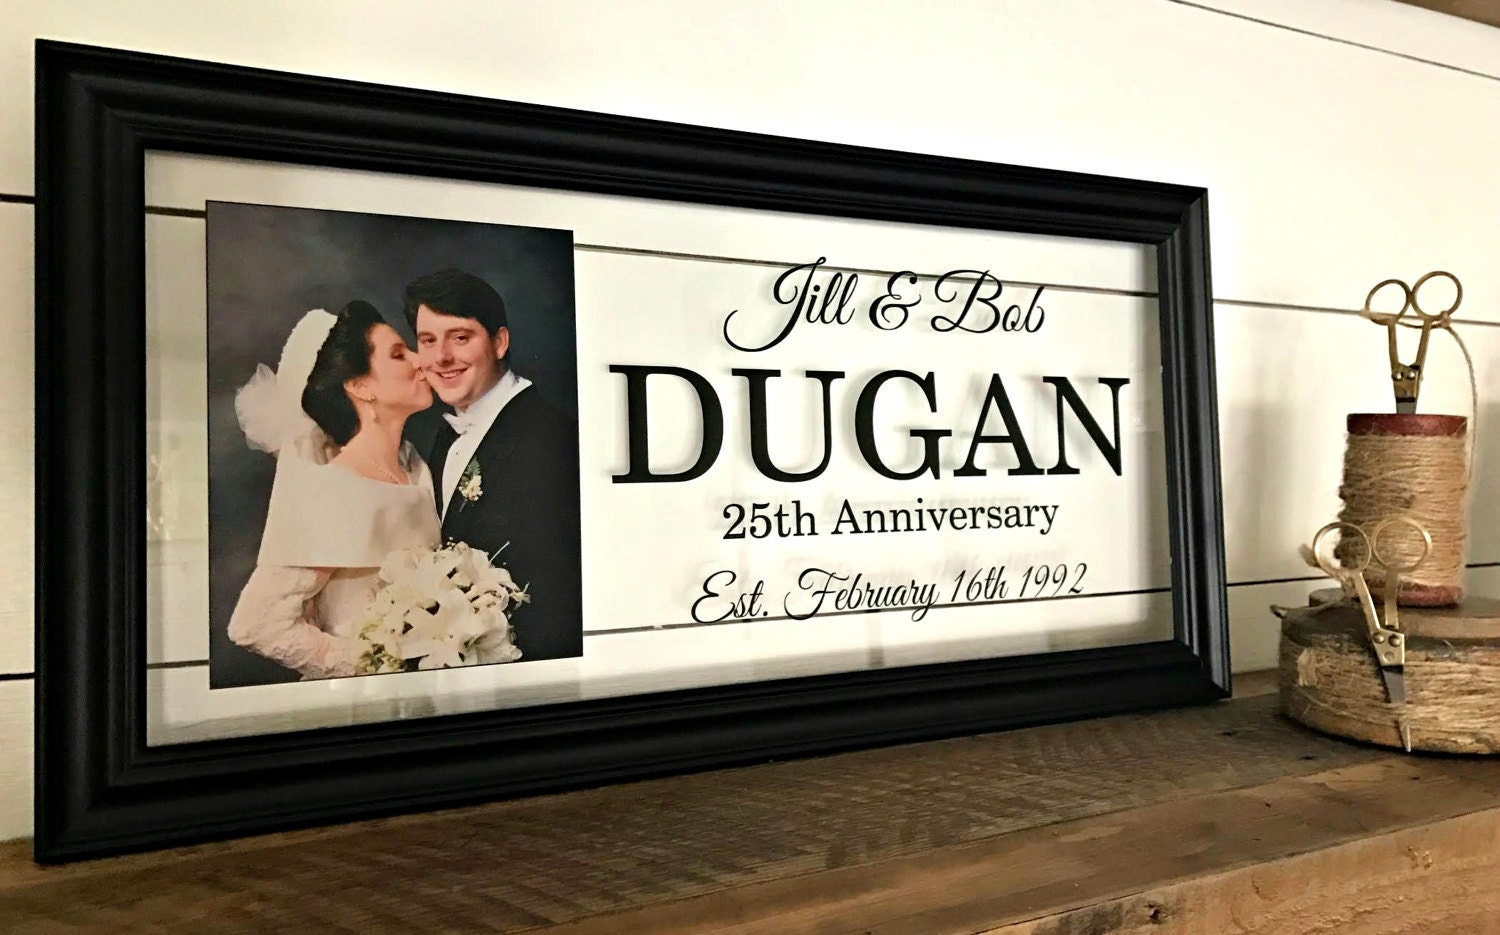 25th Anniversary Ideas For Husband: 25th Anniversary Gift 25th Anniversary Husband Gift 25th